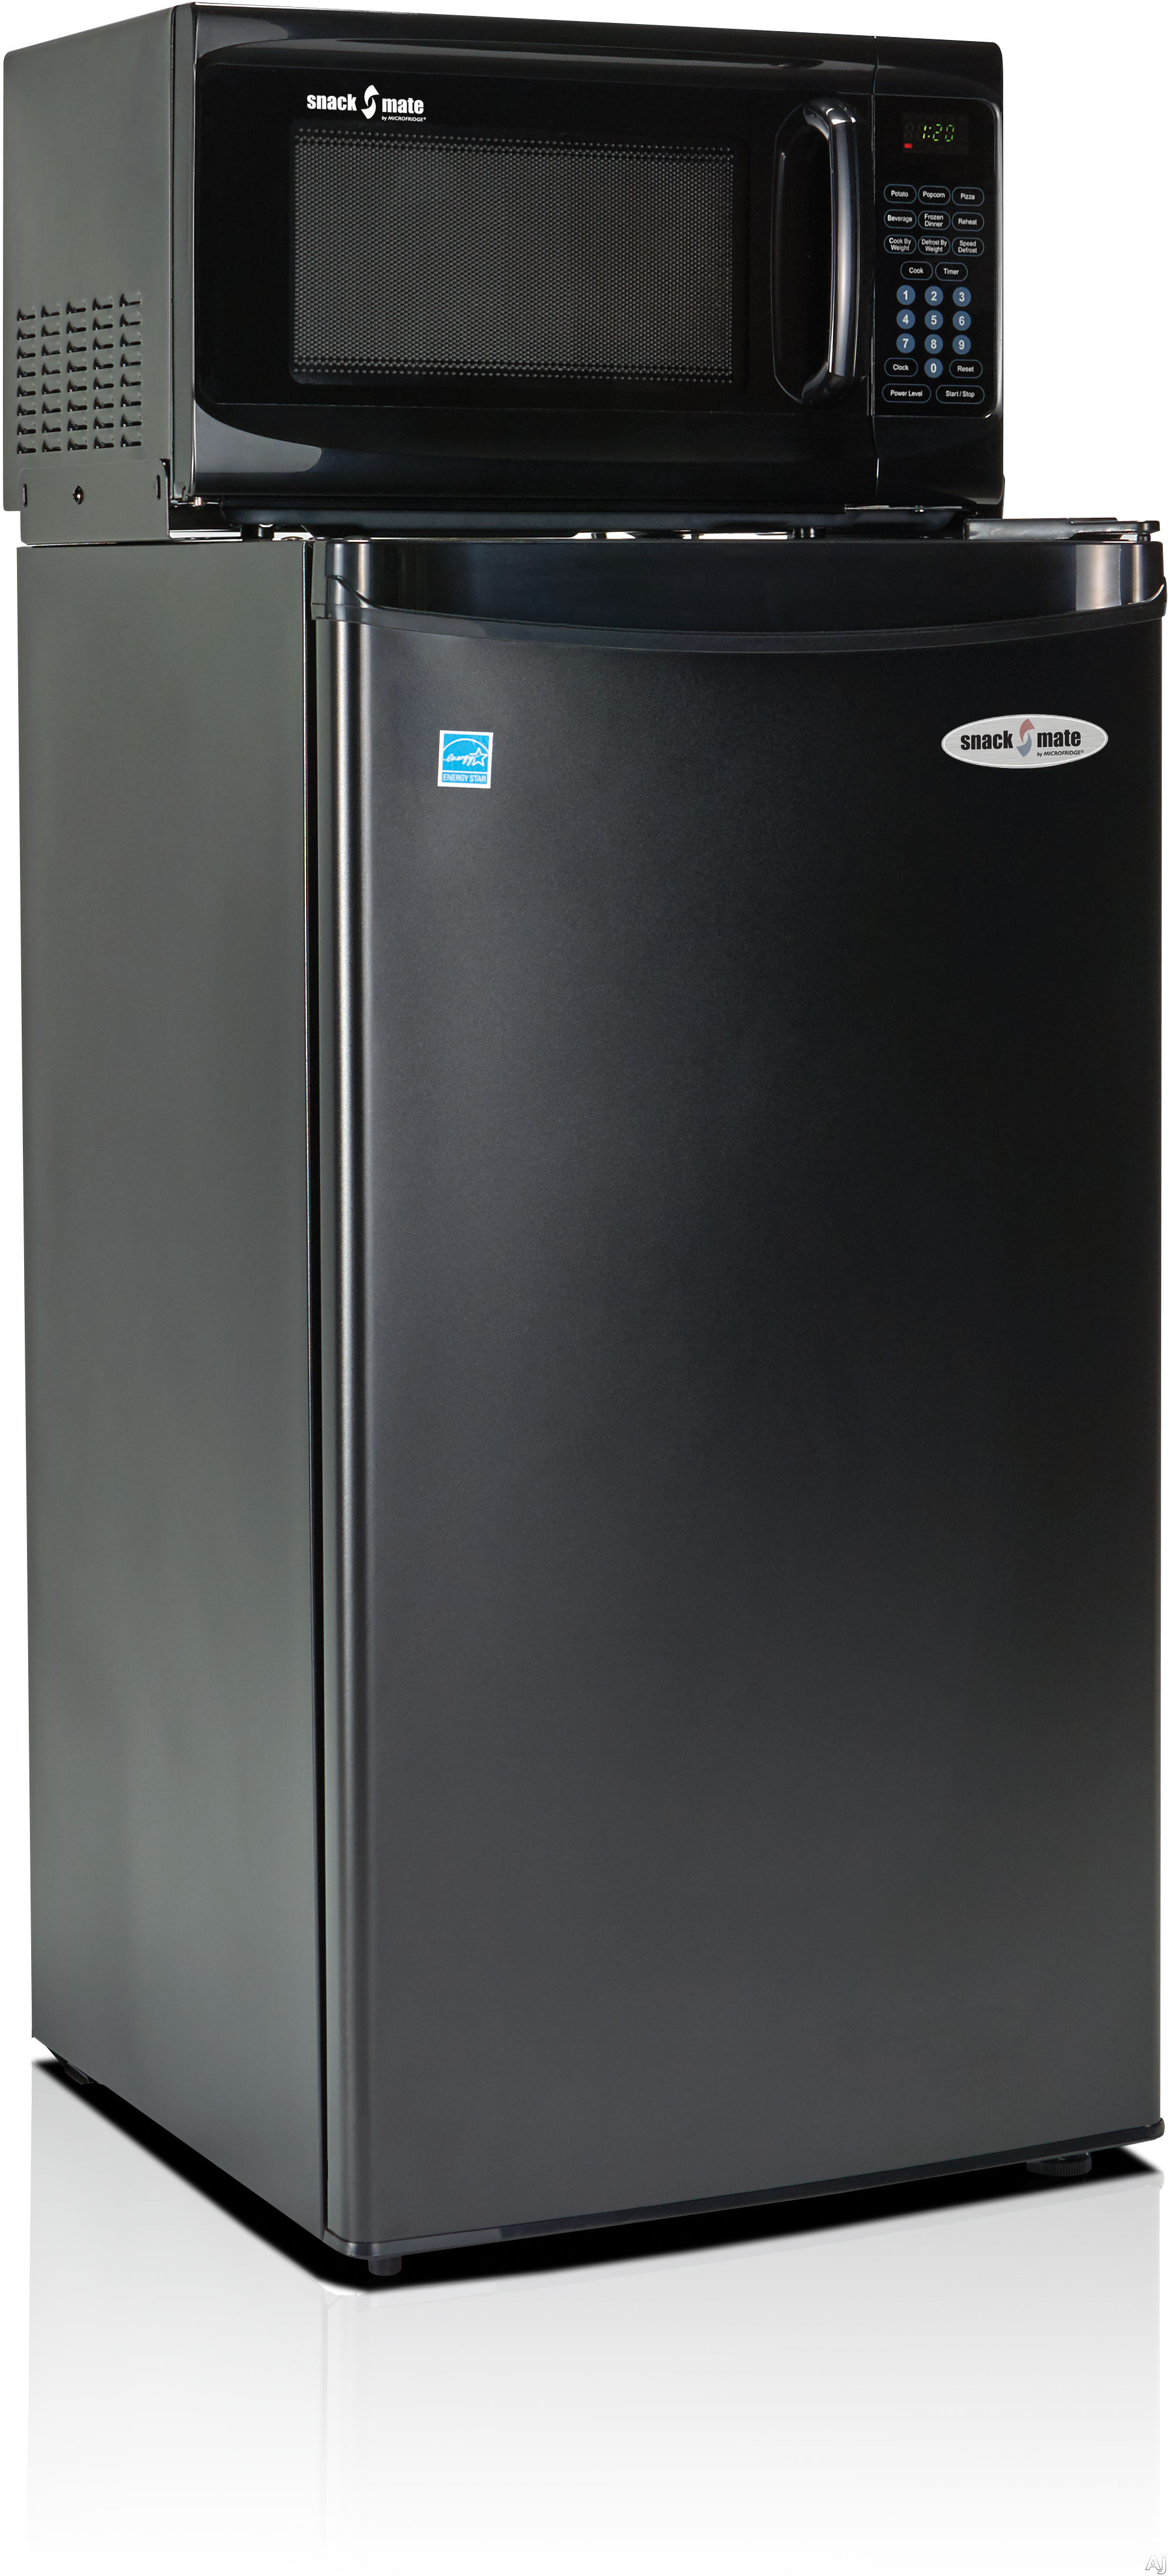 MicroFridge Snackmate Series 33SM47A1 3.3 cu. ft. Compact Refrigerator with 700 Watt Microwave, One-Plug-to-the-Wall Operations, 4 Adjustable Shelves, CanStor Beverage Dispenser, ENERGY STAR and 2-Liter Bottle Door Storage